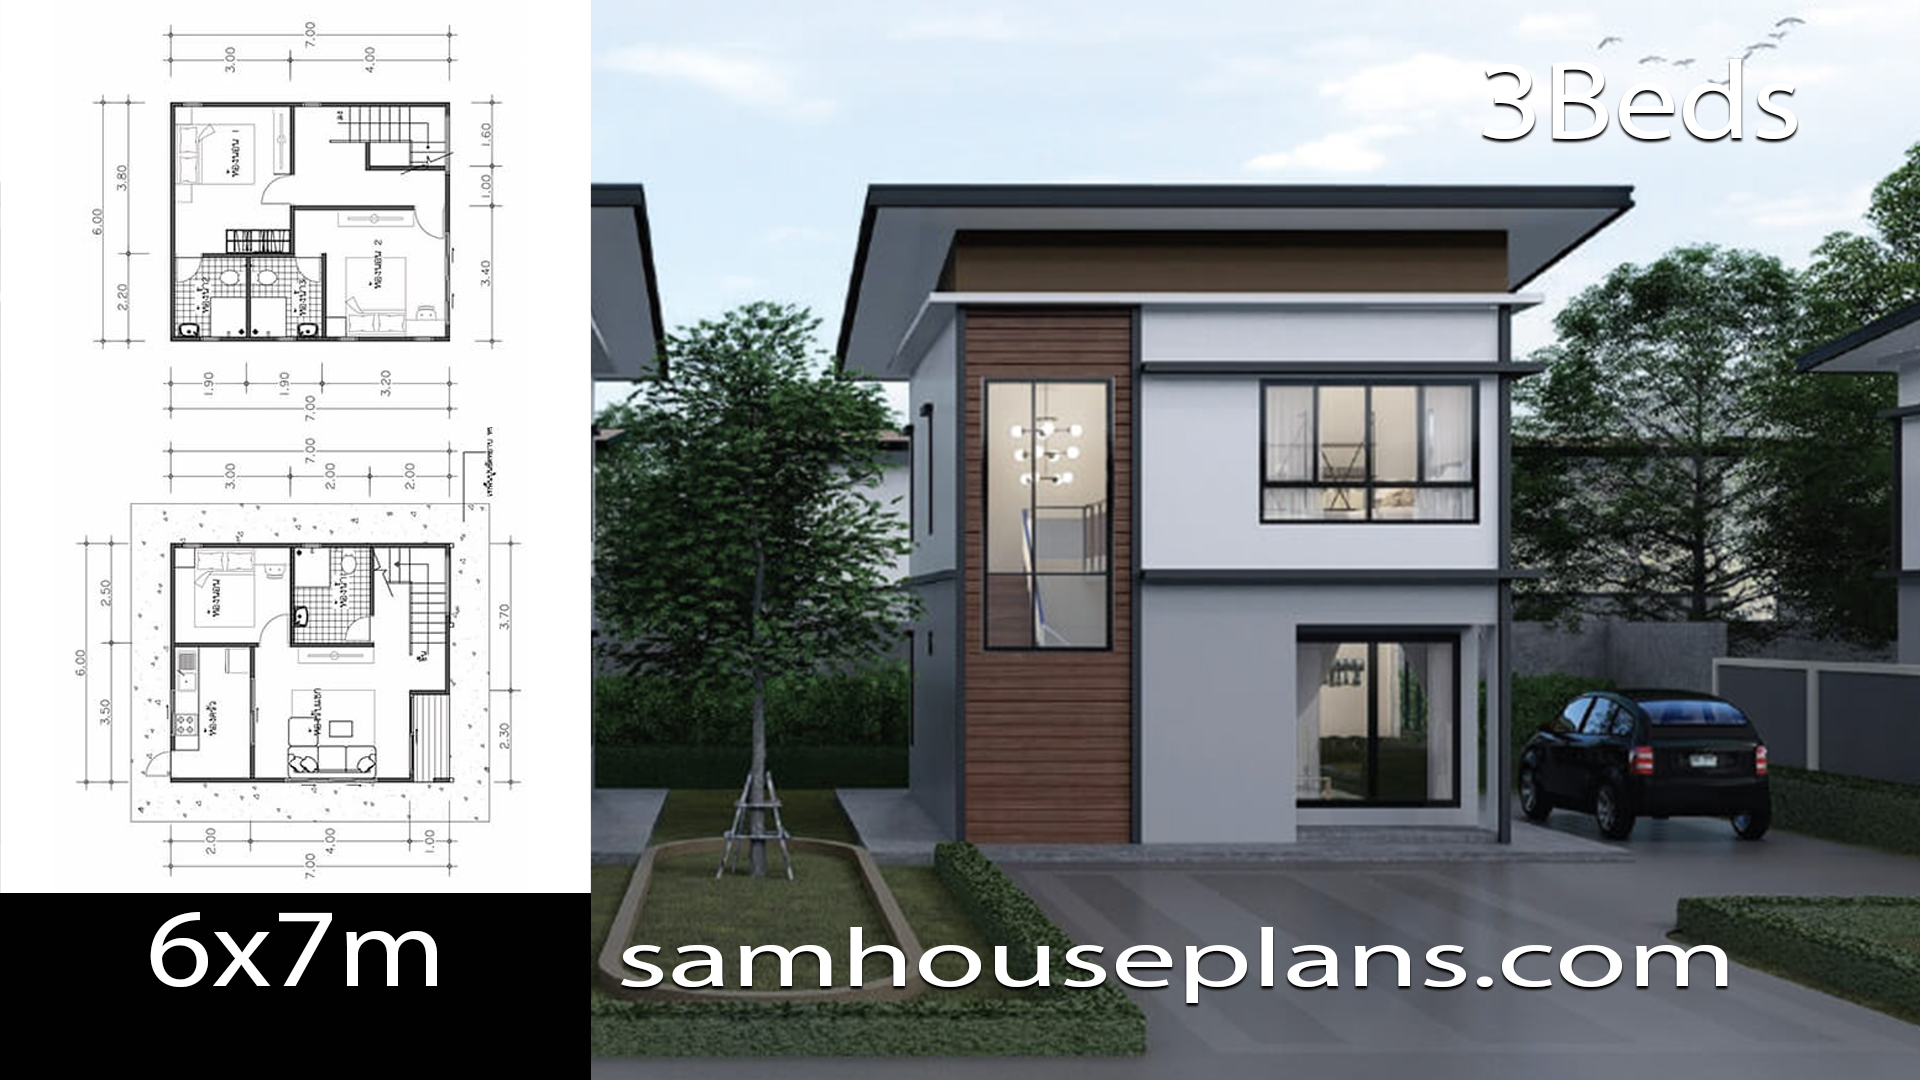 House Plans Idea 6x7 with 3 Bedrooms - Sam House Plans